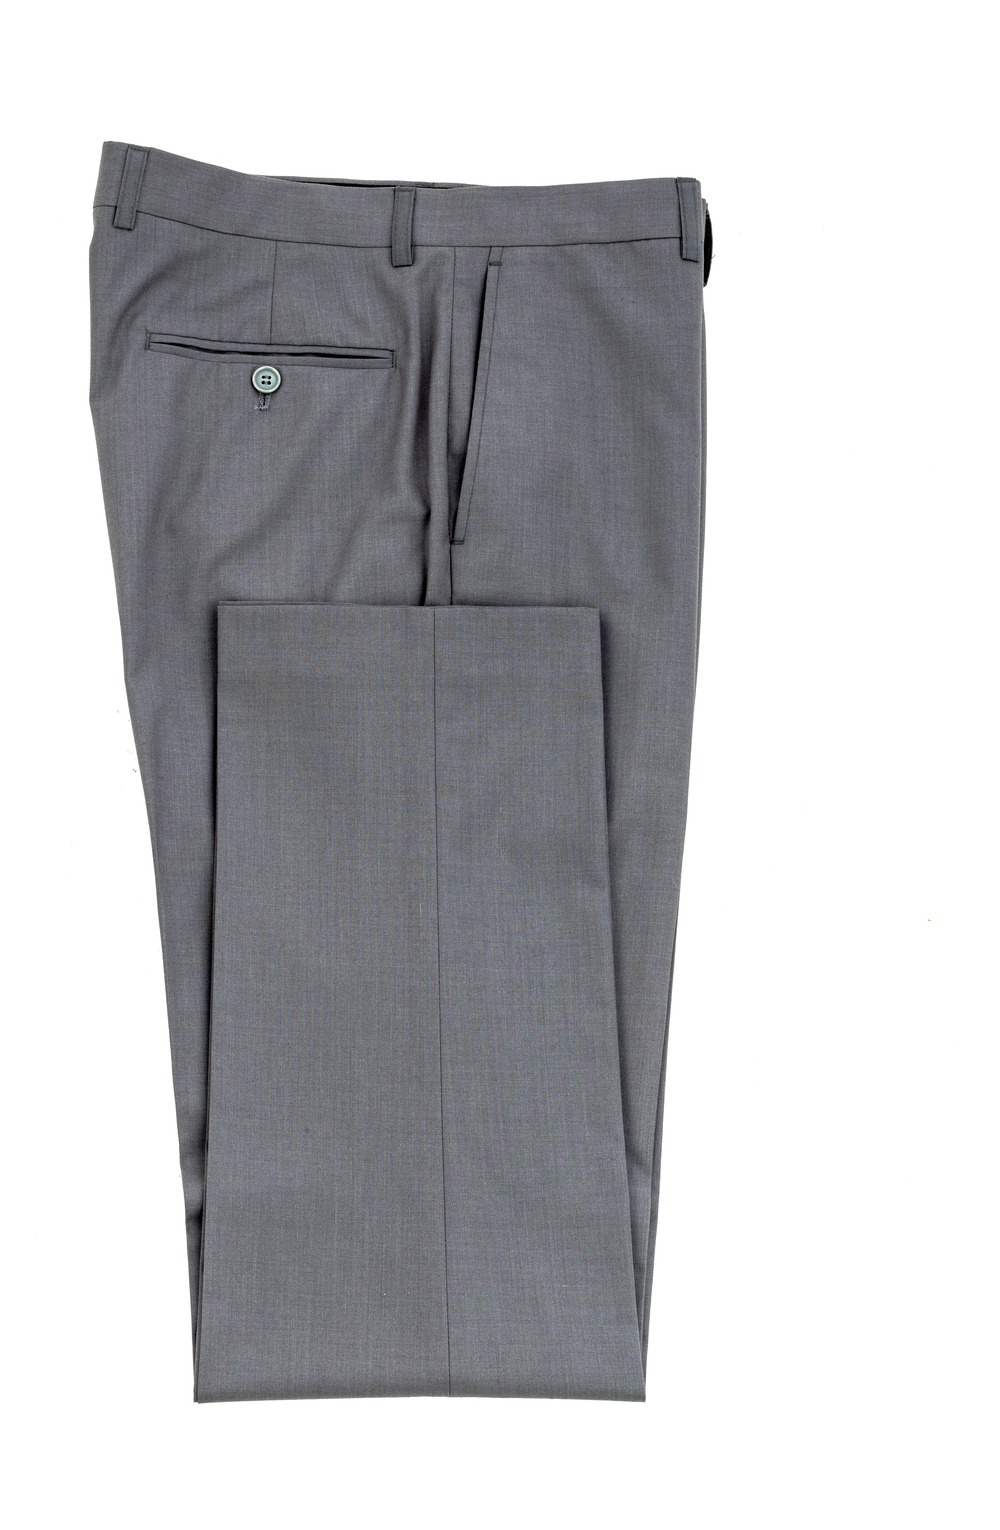 Deniro Grey Trouser